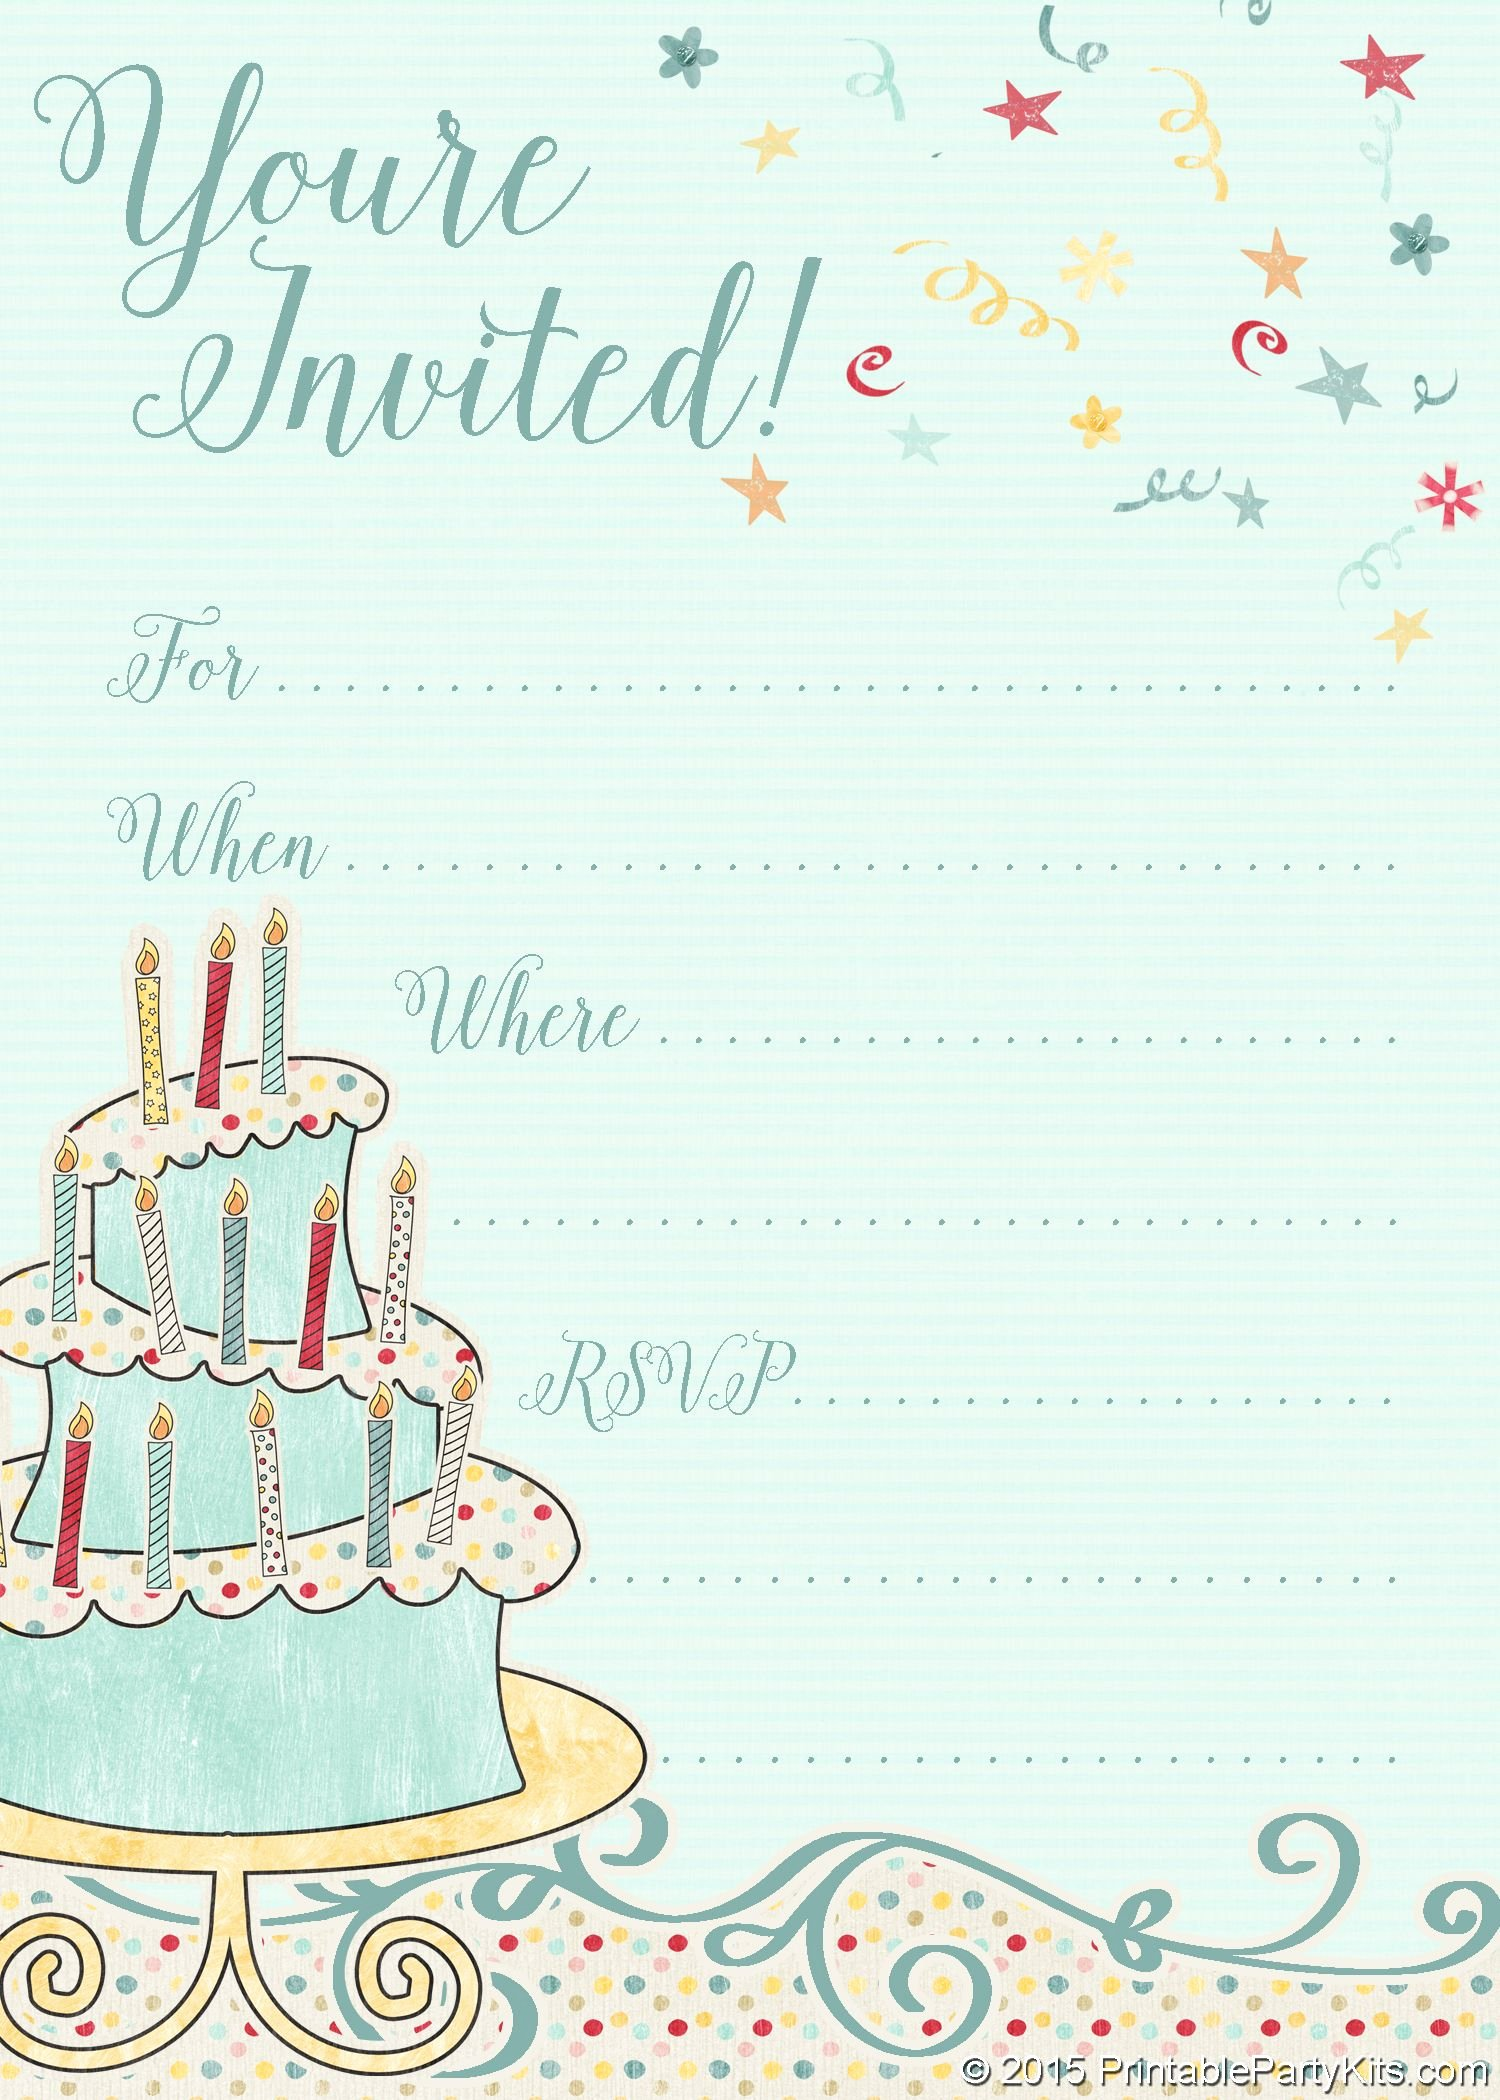 Party Invitation Template Free Luxury Free Printable Whimsical Birthday Party Invitation